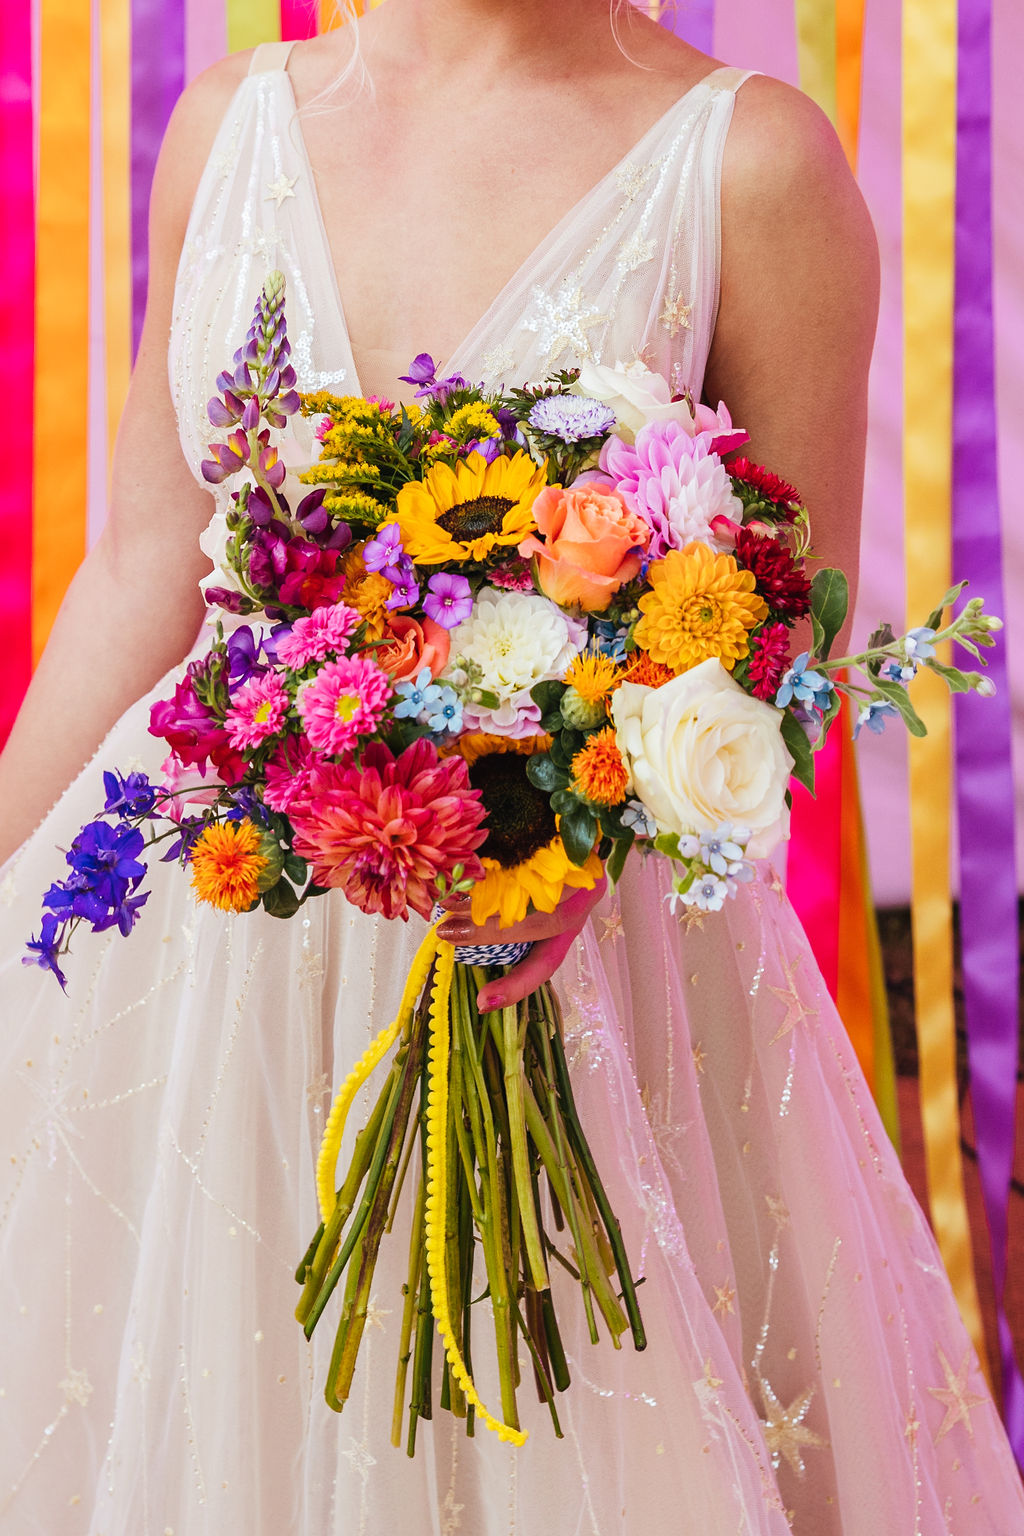 rainbow wedding bouquet - colourful wedding bouquet - colourful wedding flowers - bohemian wedding bouquet